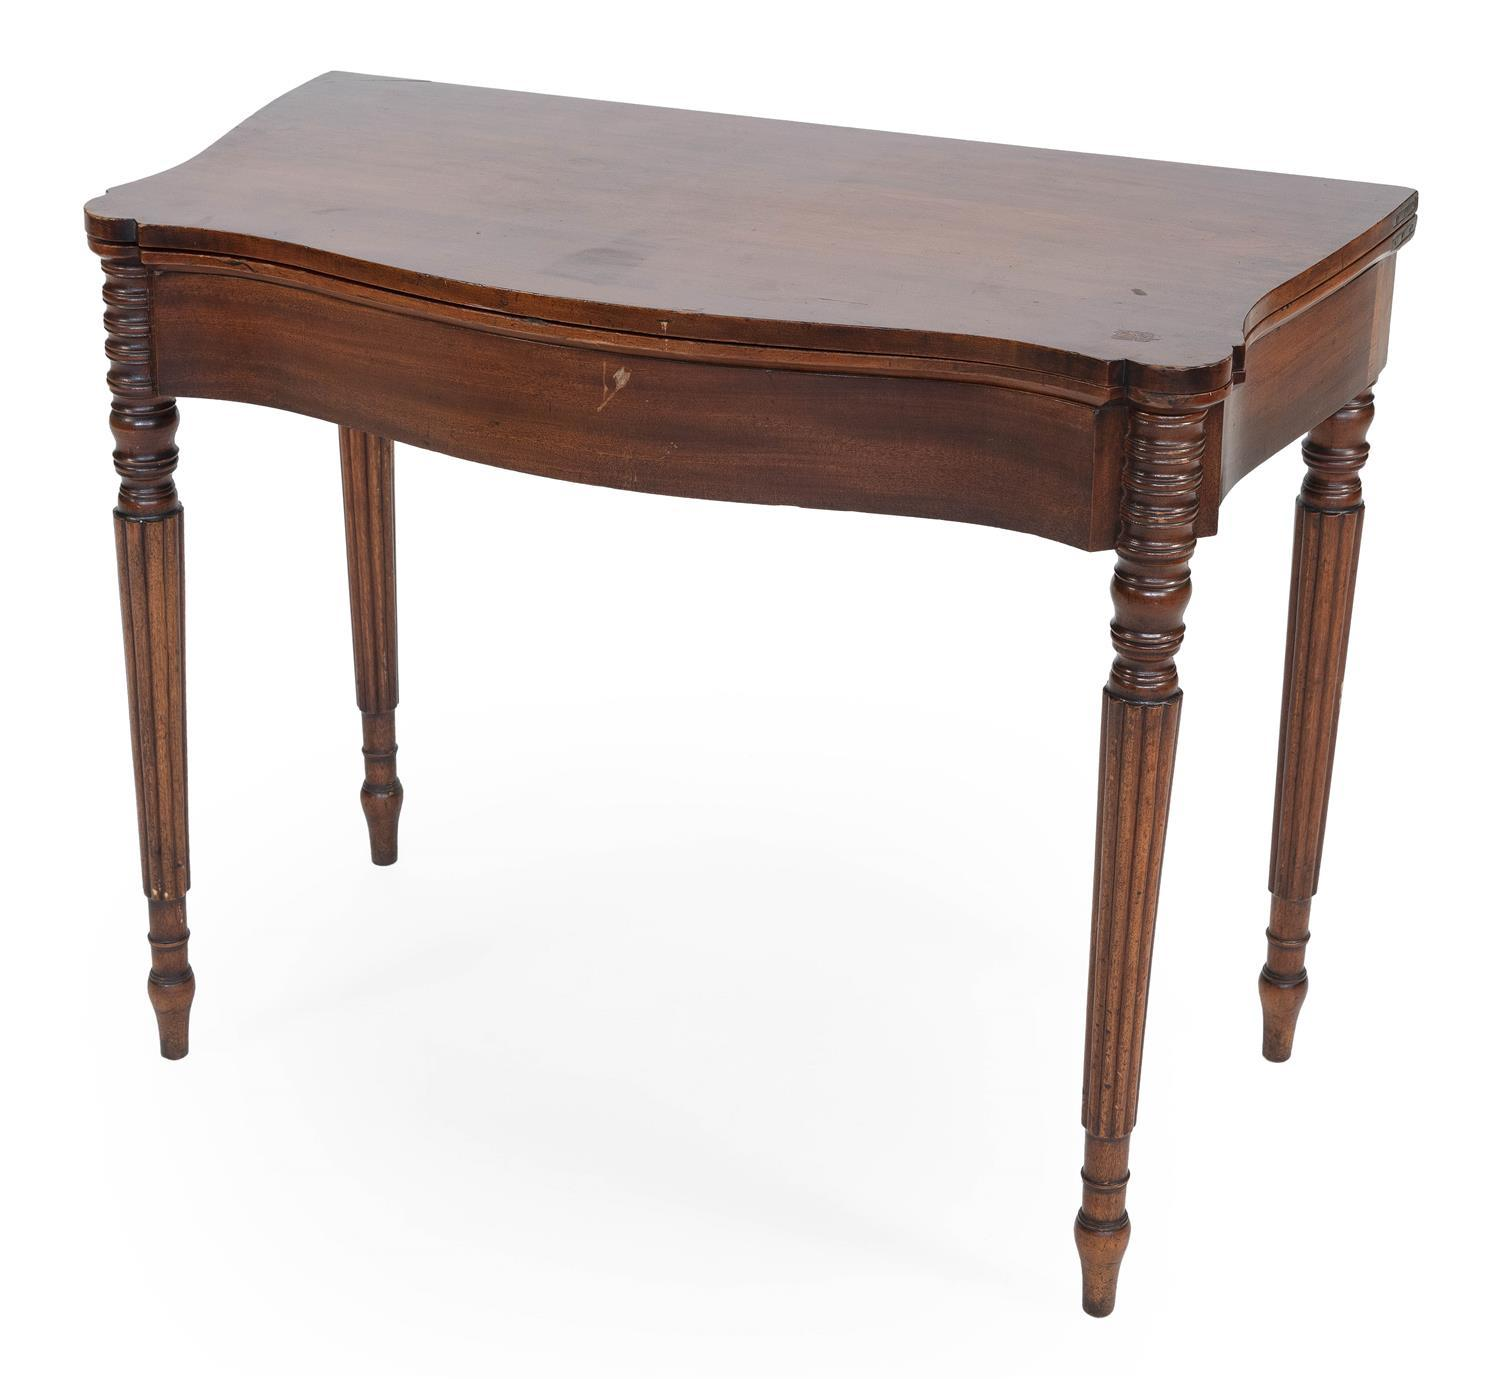 "SHERATON CARD TABLE In mahogany, with a serpentine front and tapered and reeded legs. Height 29.5"". Width 33.75"". Depth 17.5""."